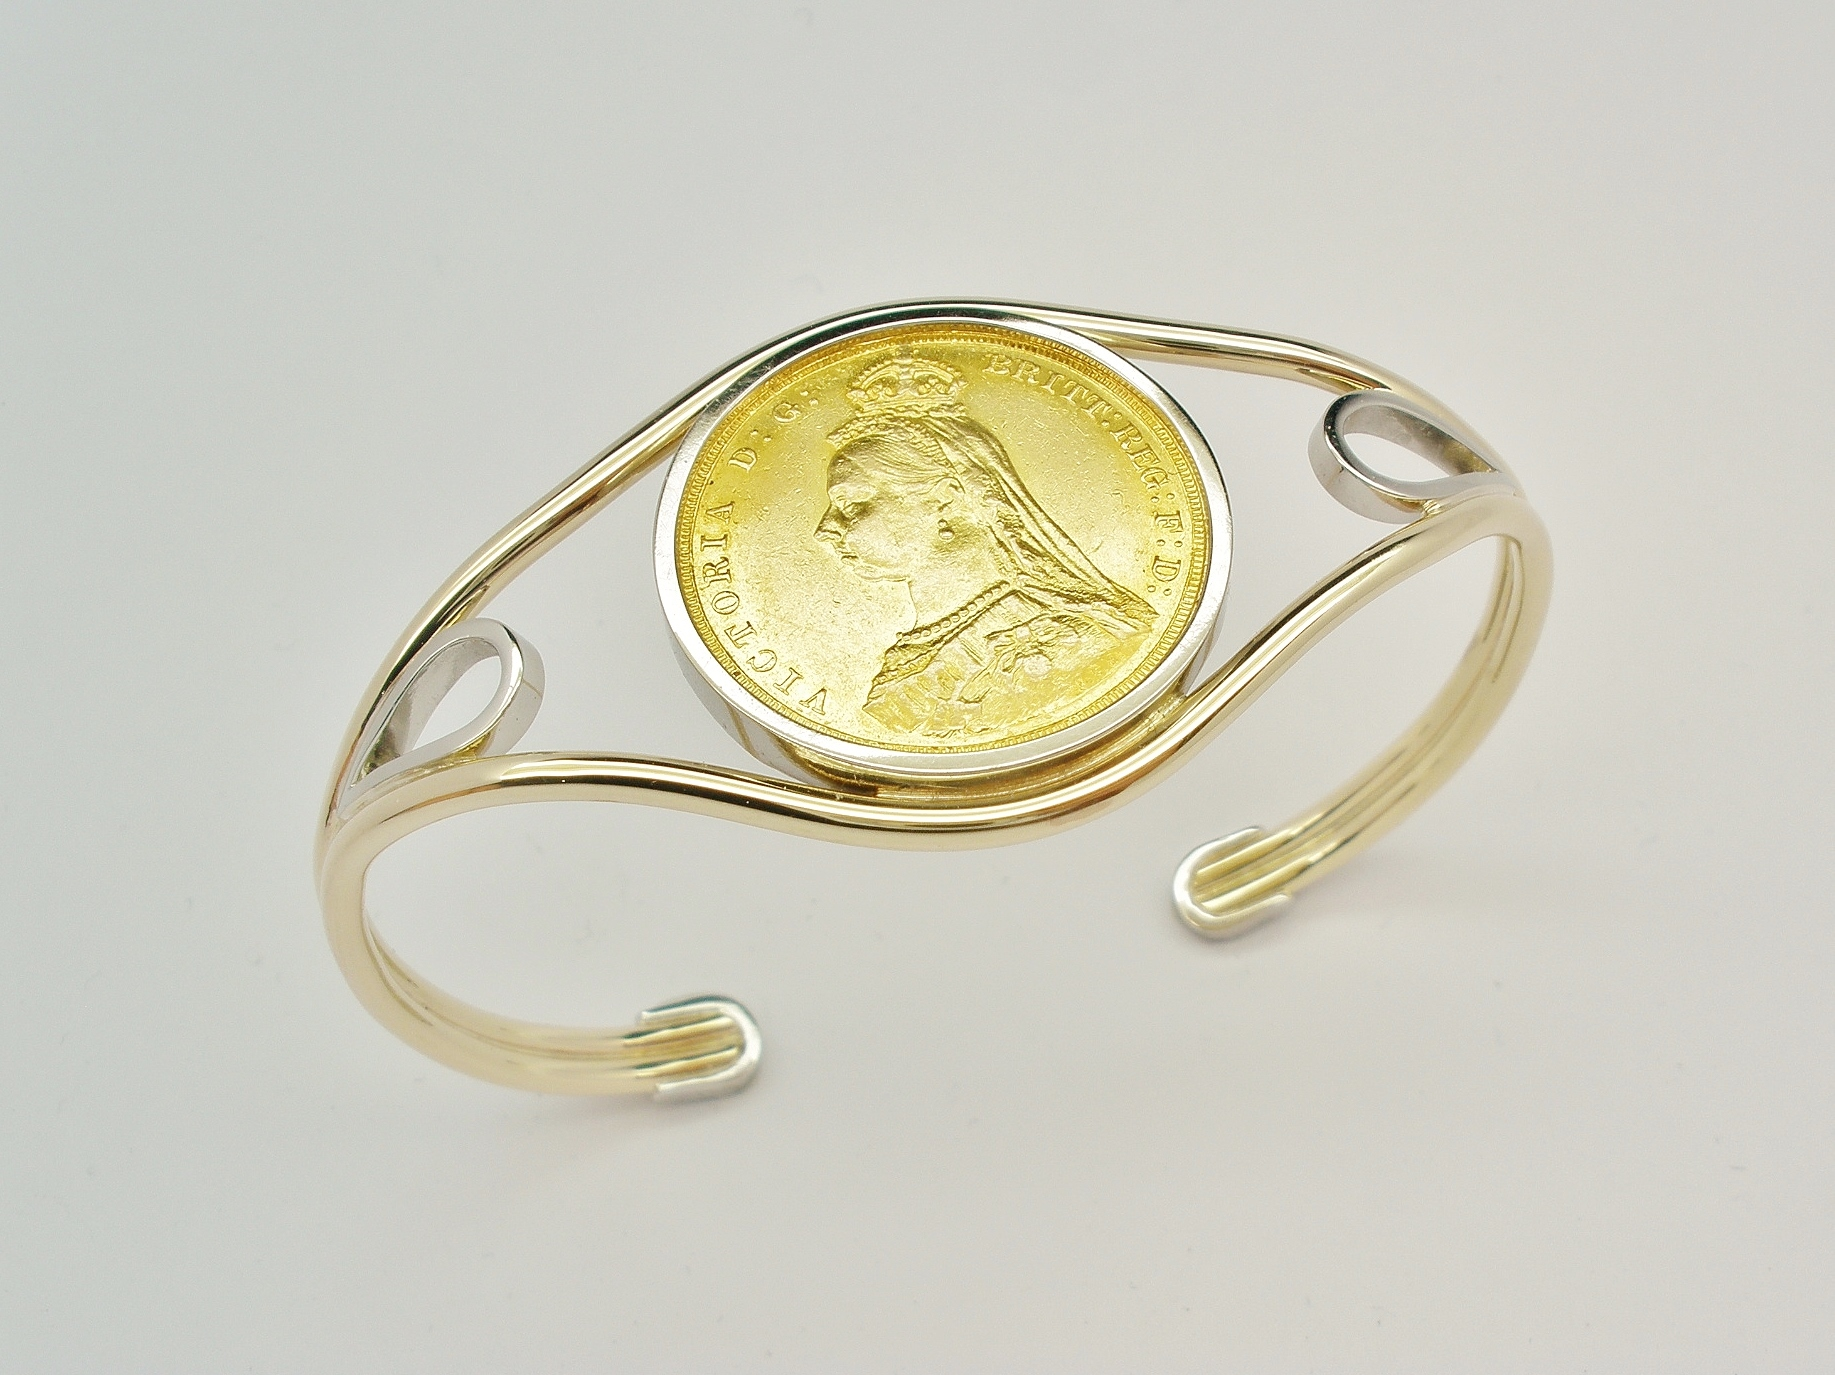 9ct. yellow gold and palladium torque bangle mounted with a single gold full sovereign coin.